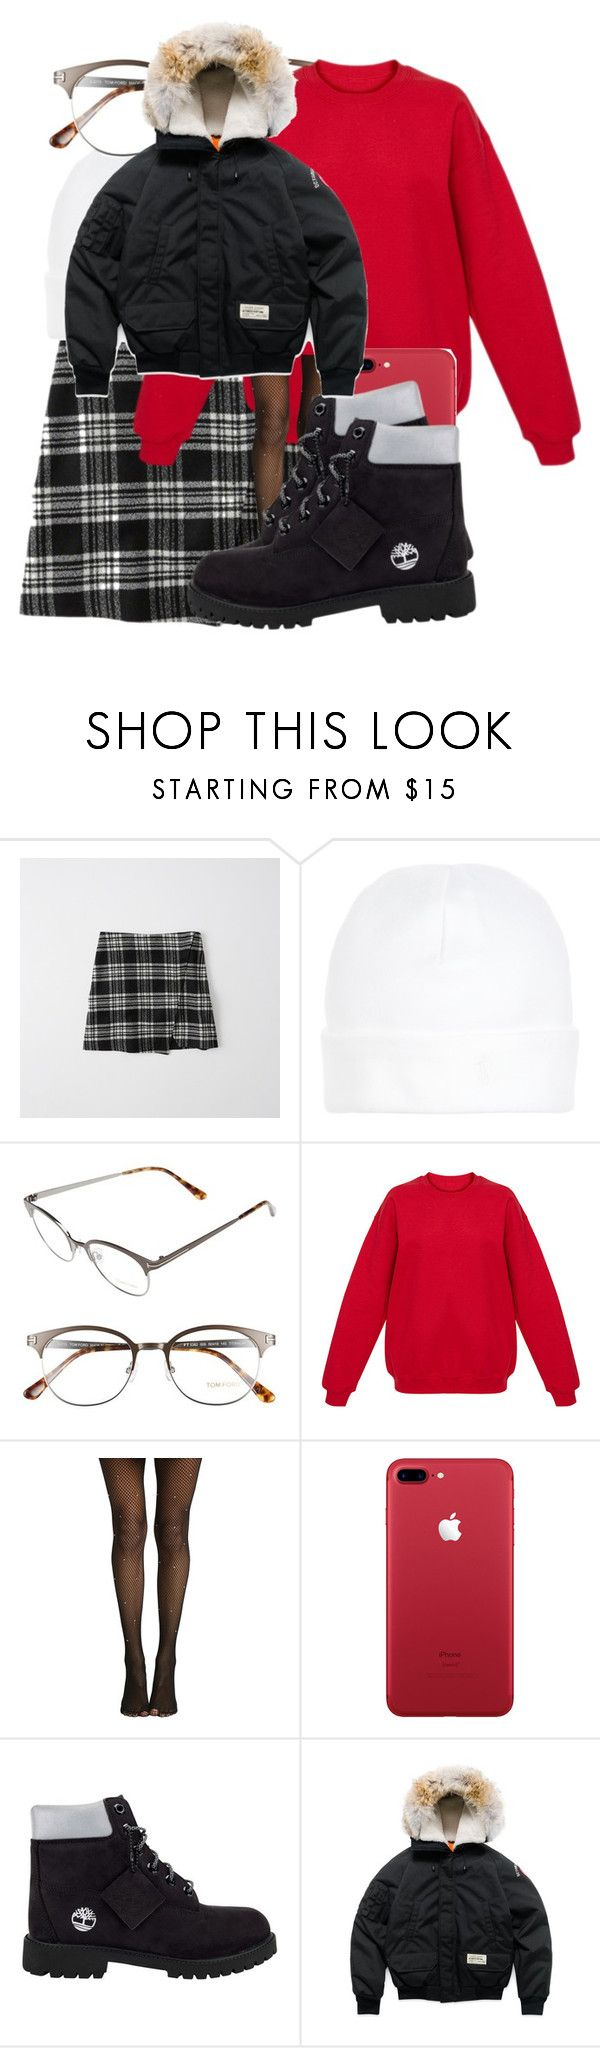 """""""Untitled #4848"""" by dianna-argons-lover ❤ liked on Polyvore featuring Abercrombie & Fitch, Ralph Lauren, Tom Ford, Hot Topic, Timberland and Canada Goose"""